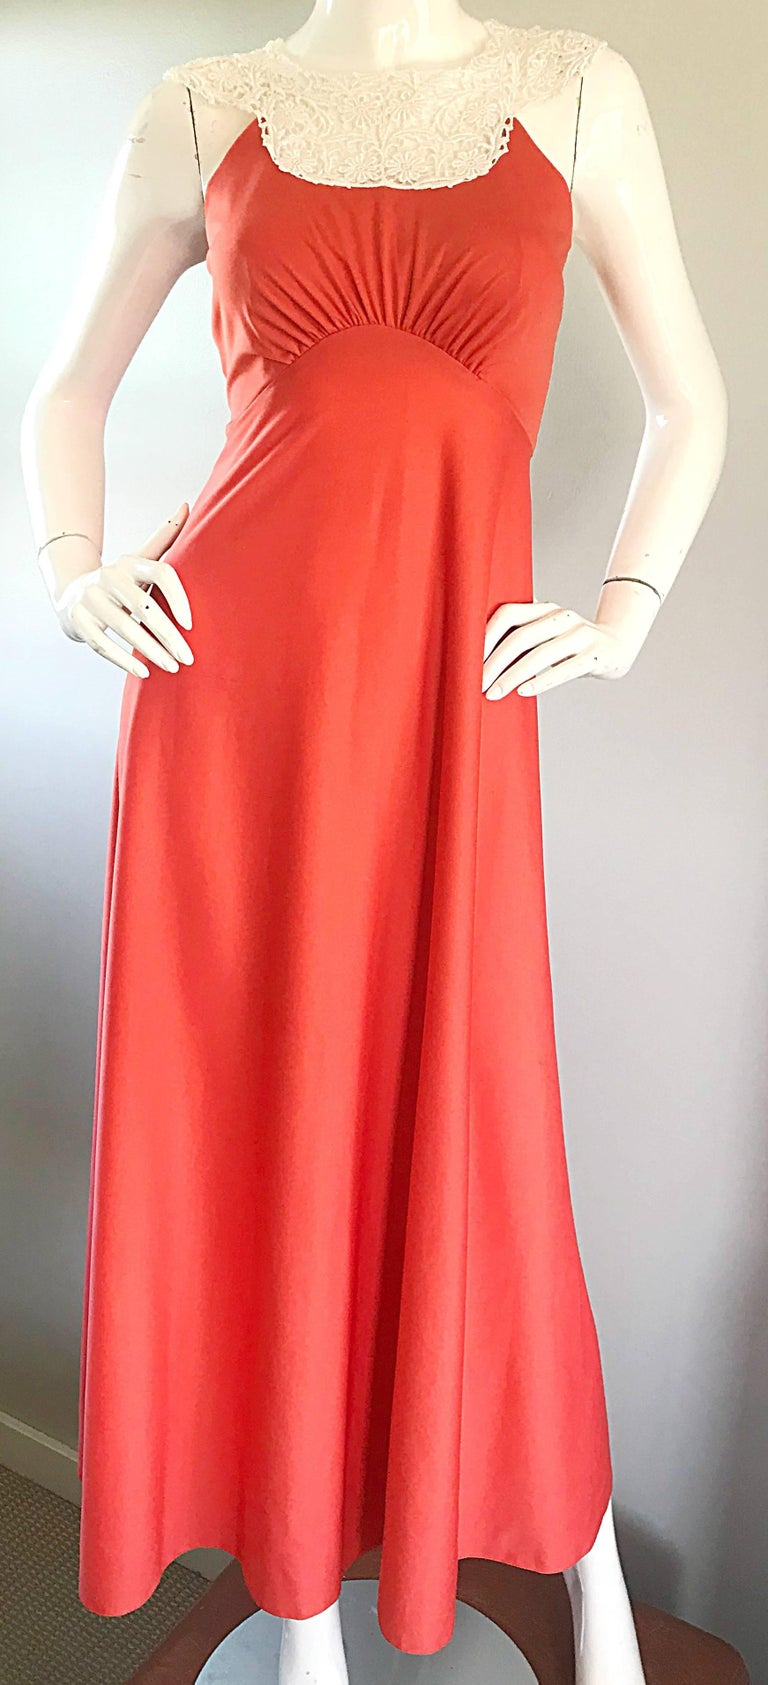 Women's 1970s Coral Salmon Pink Jersey + Crochet Lace Collar 70s Vintage Maxi Dress For Sale